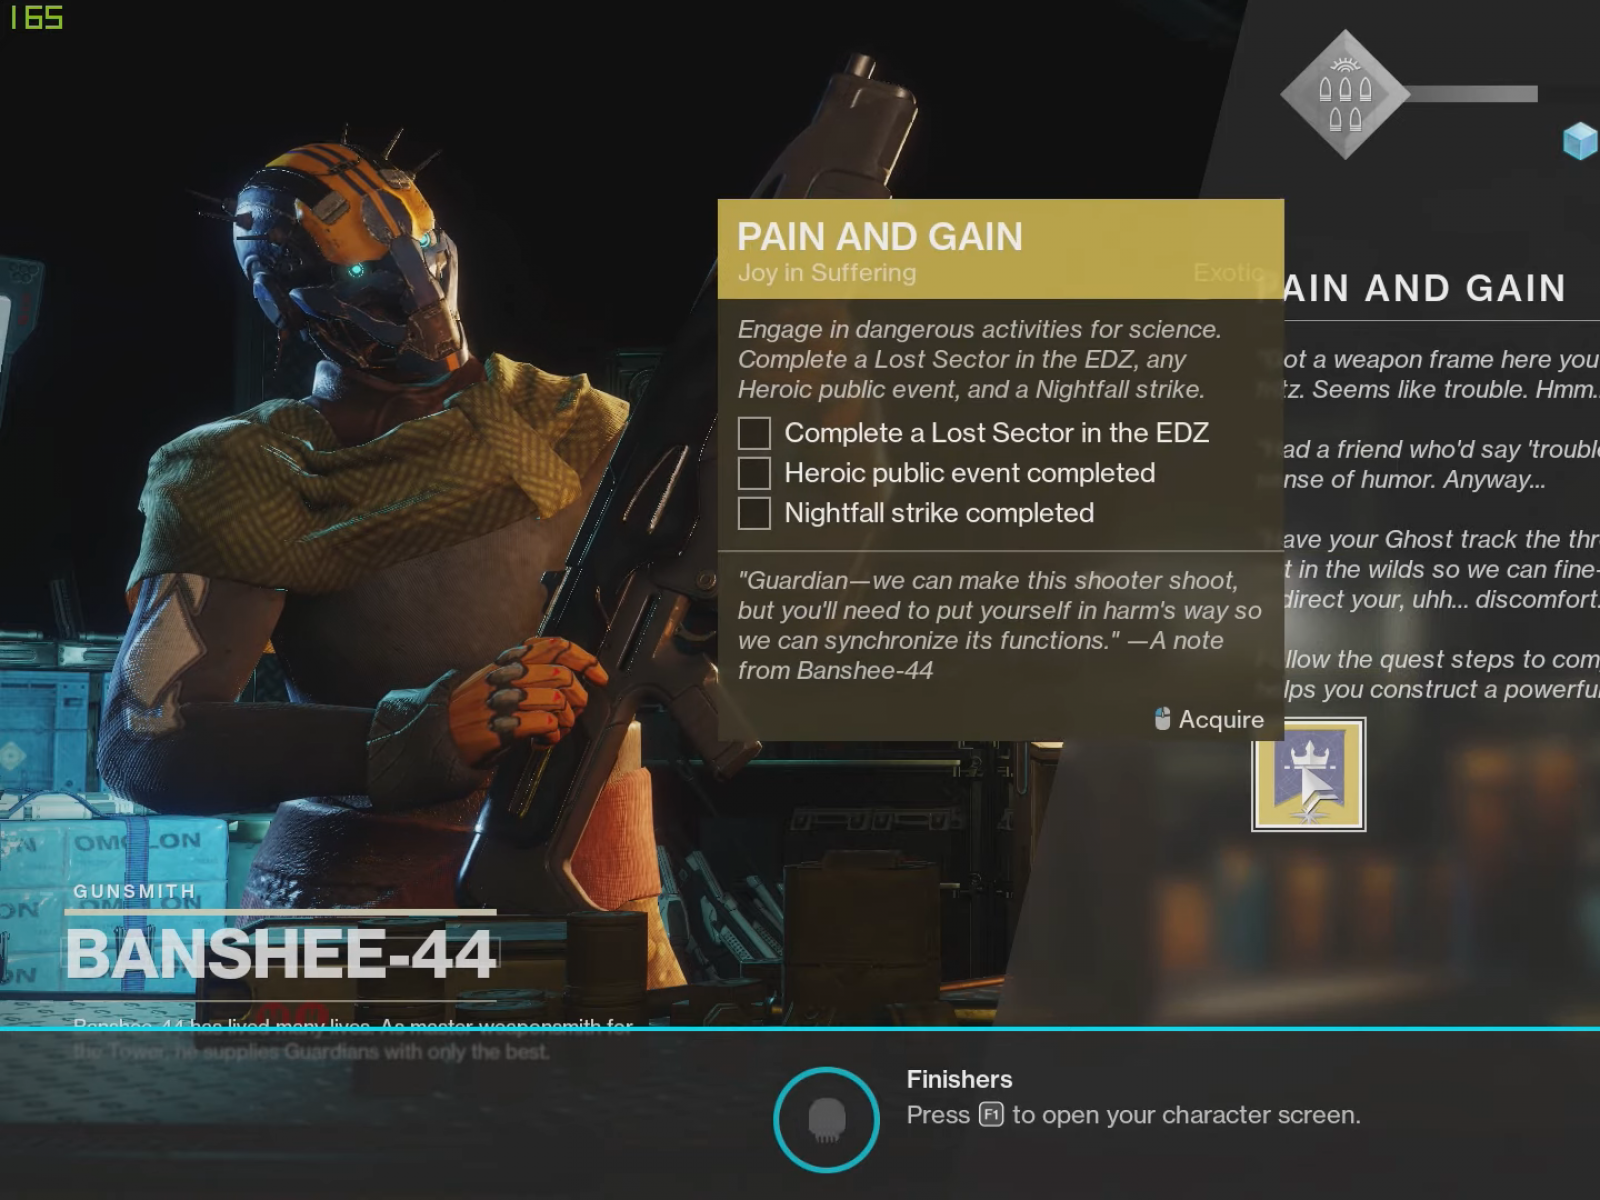 Destiny 2' Pain & Gain Exotic Quest Guide - How to Get the